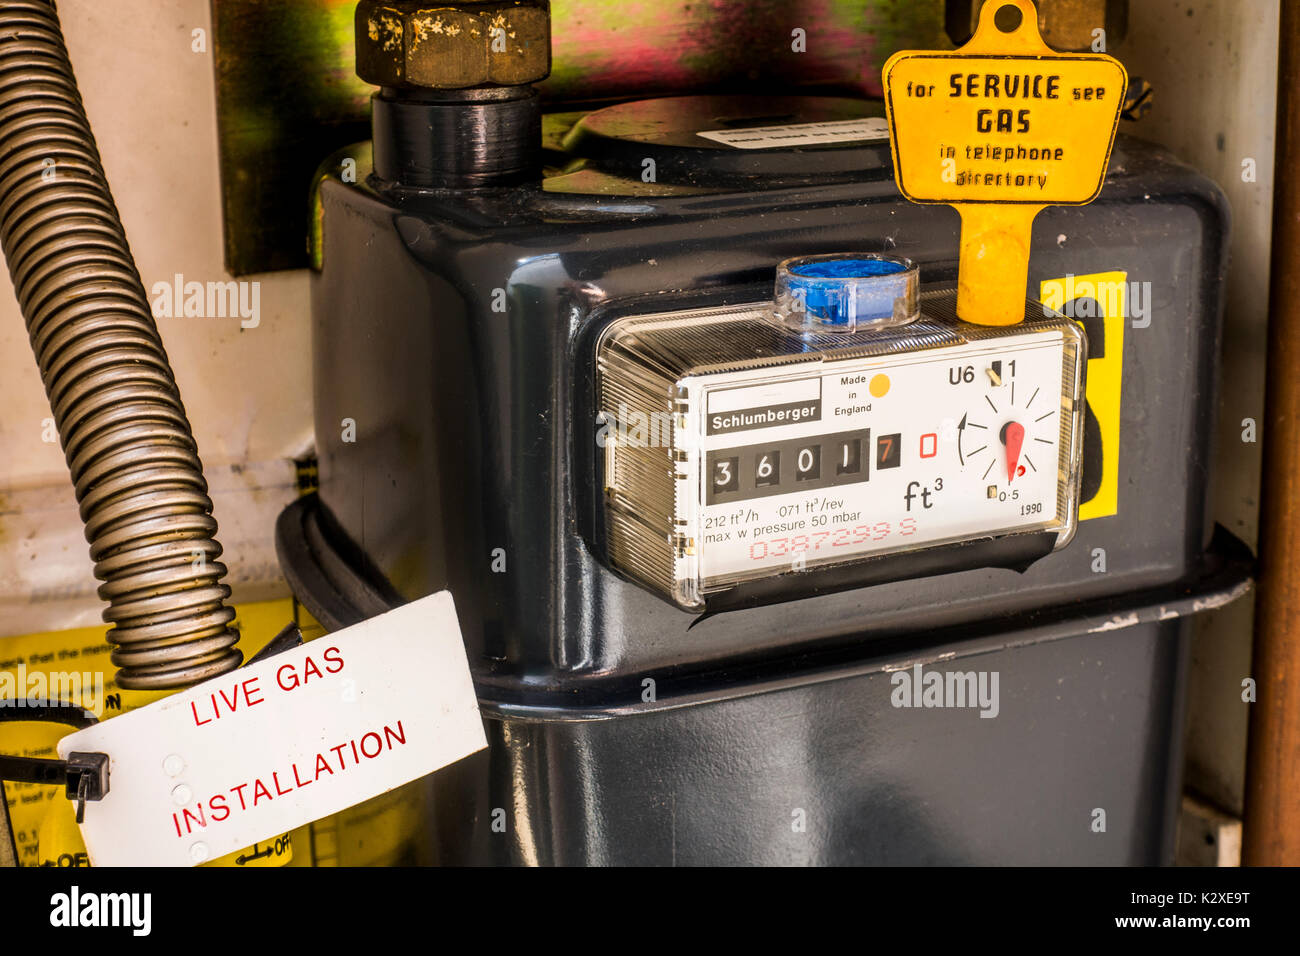 Inside a gas meter cupboard with the yellow key on top of the sealed meter and the consumption reading displayed. East Midlands, England, UK. - Stock Image